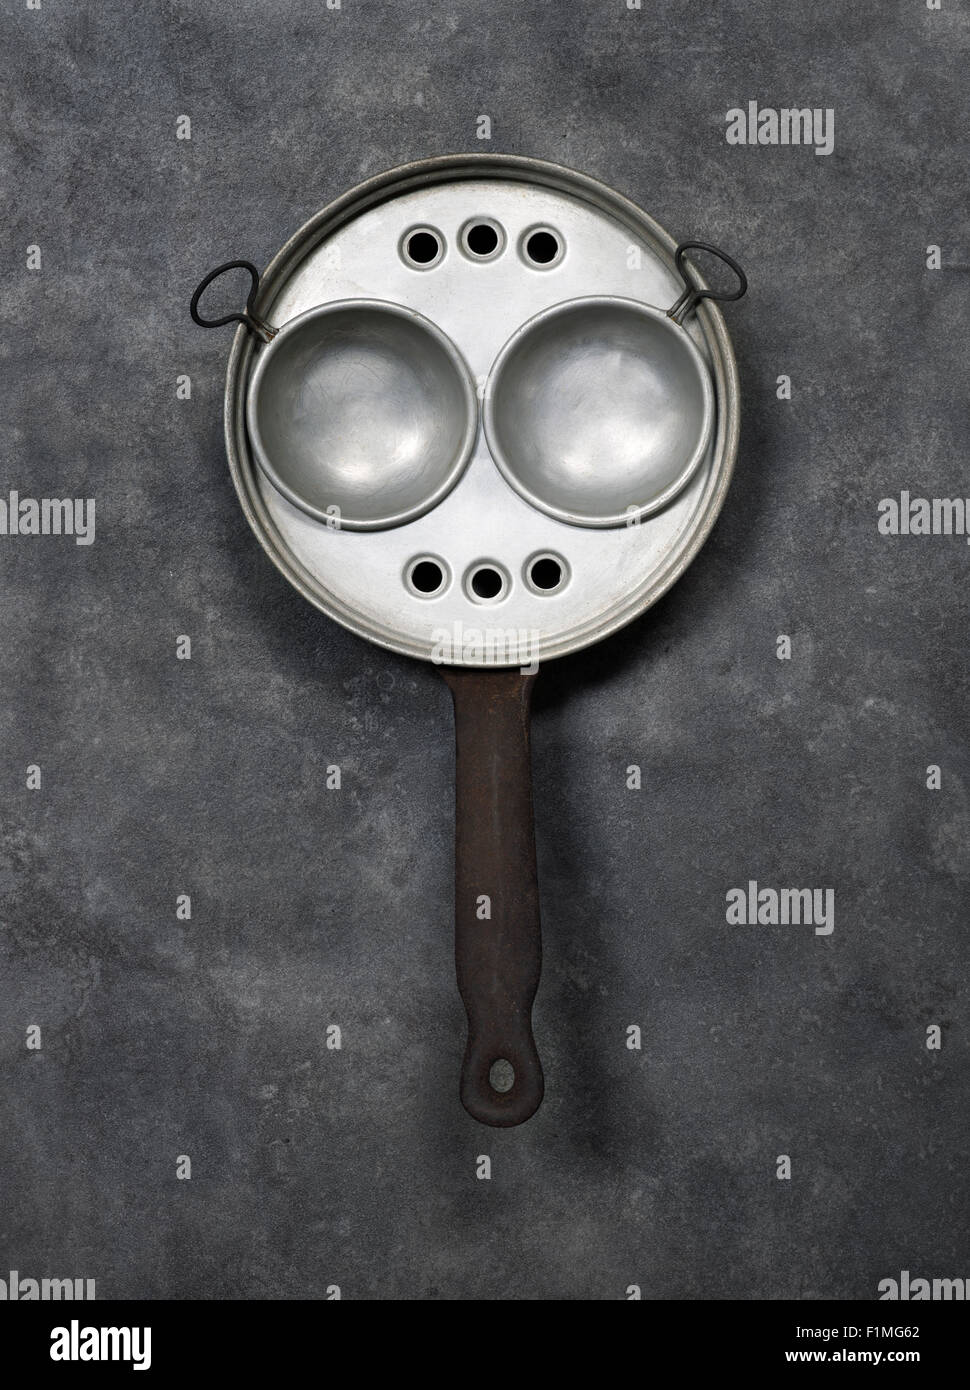 incredible Vintage Egg Poachers Part - 11: Vintage Egg Poaching Pan or Poacher